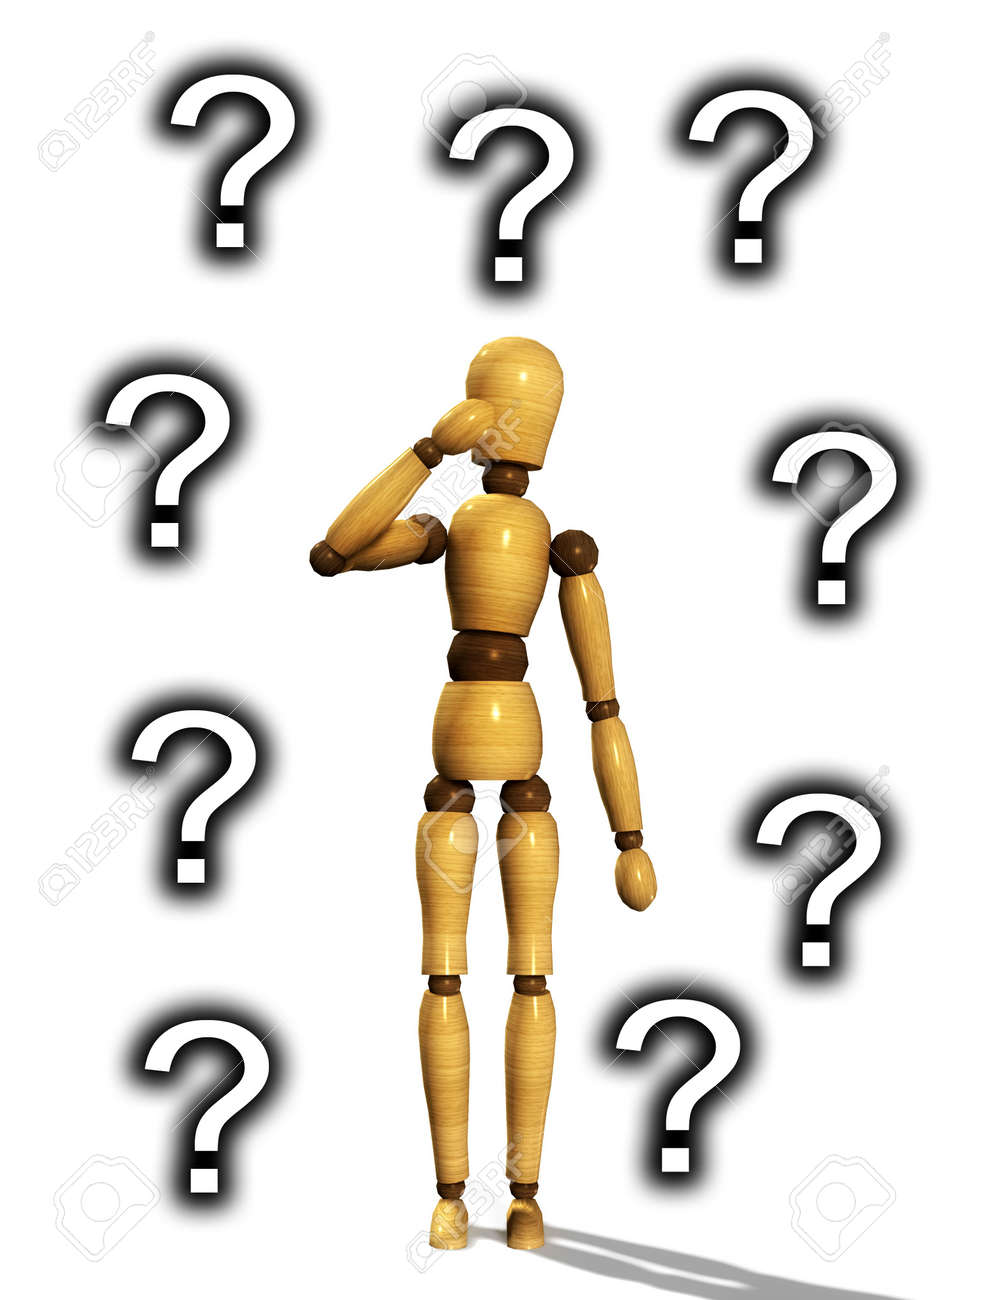 A confused wooden mannequin. Stock Photo - 3934563